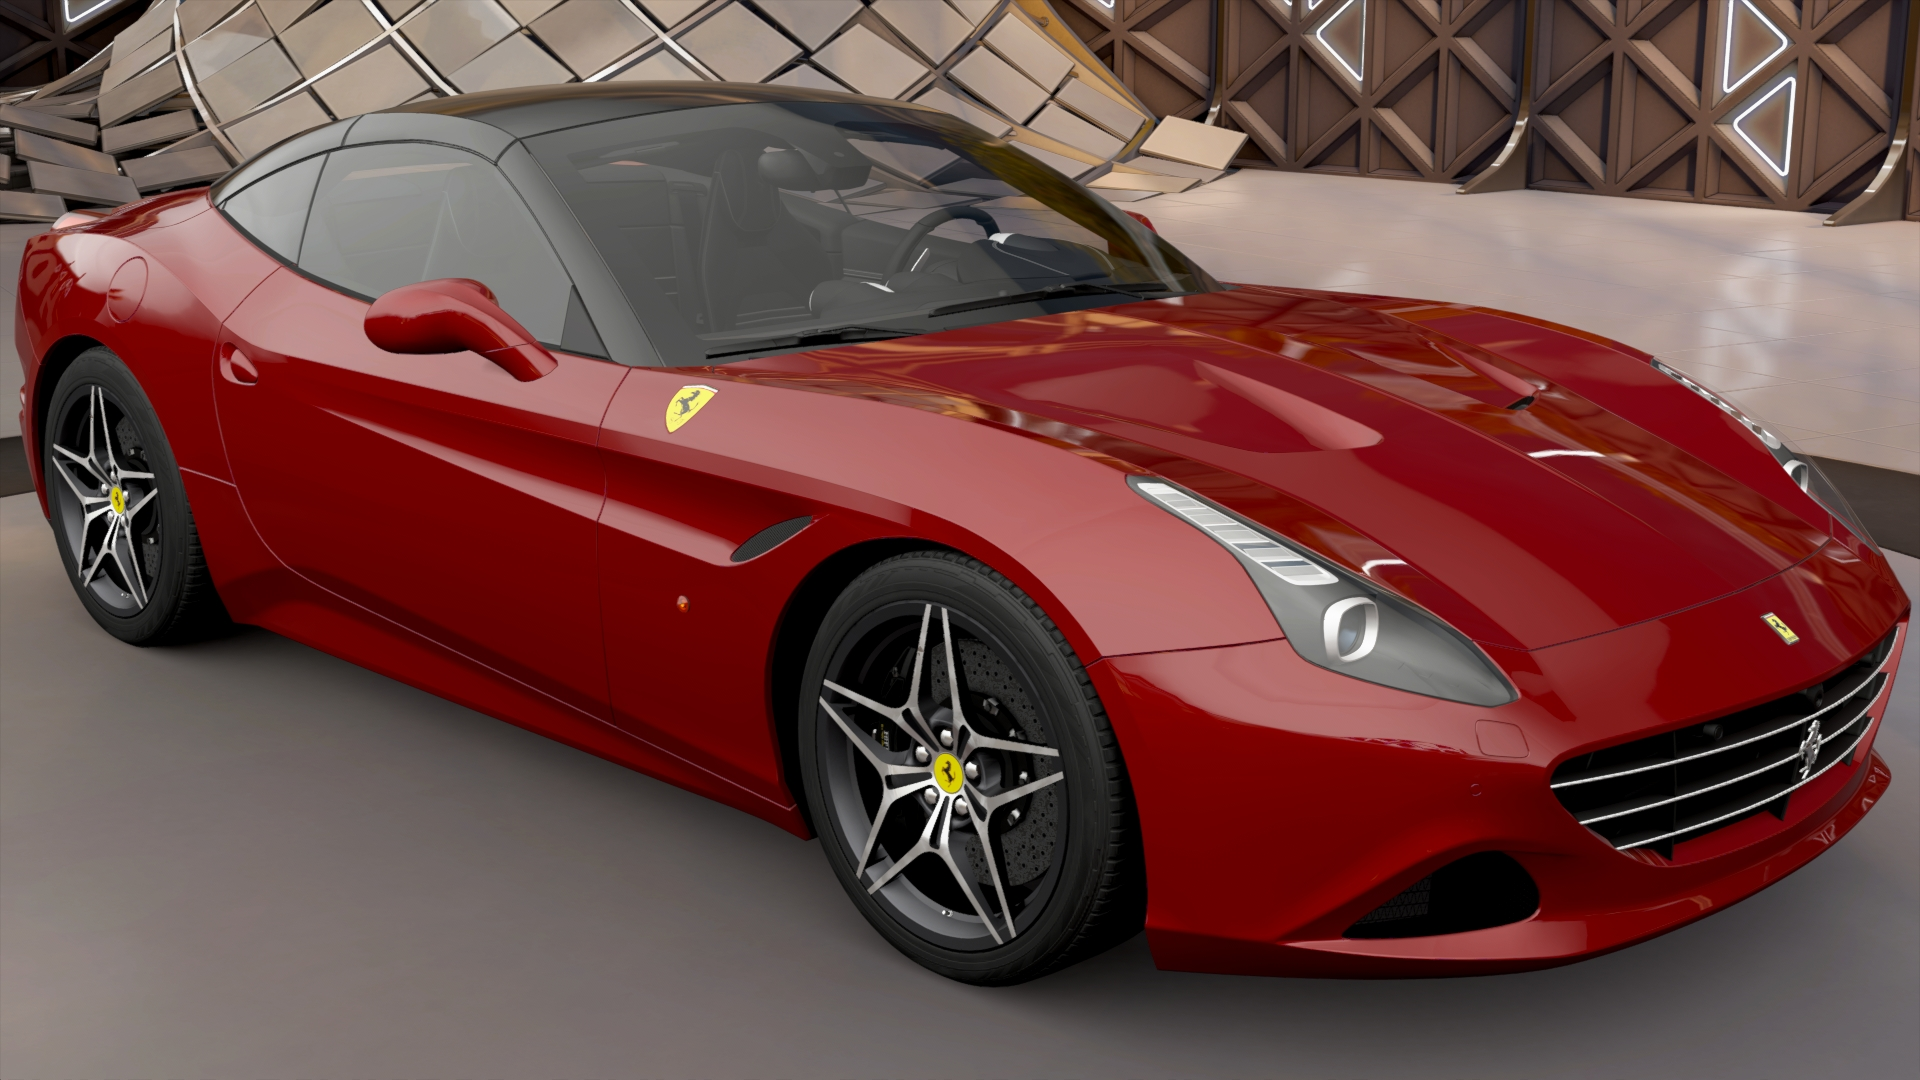 Ferrari California T >> Ferrari California T Forza Motorsport Wiki Fandom Powered By Wikia